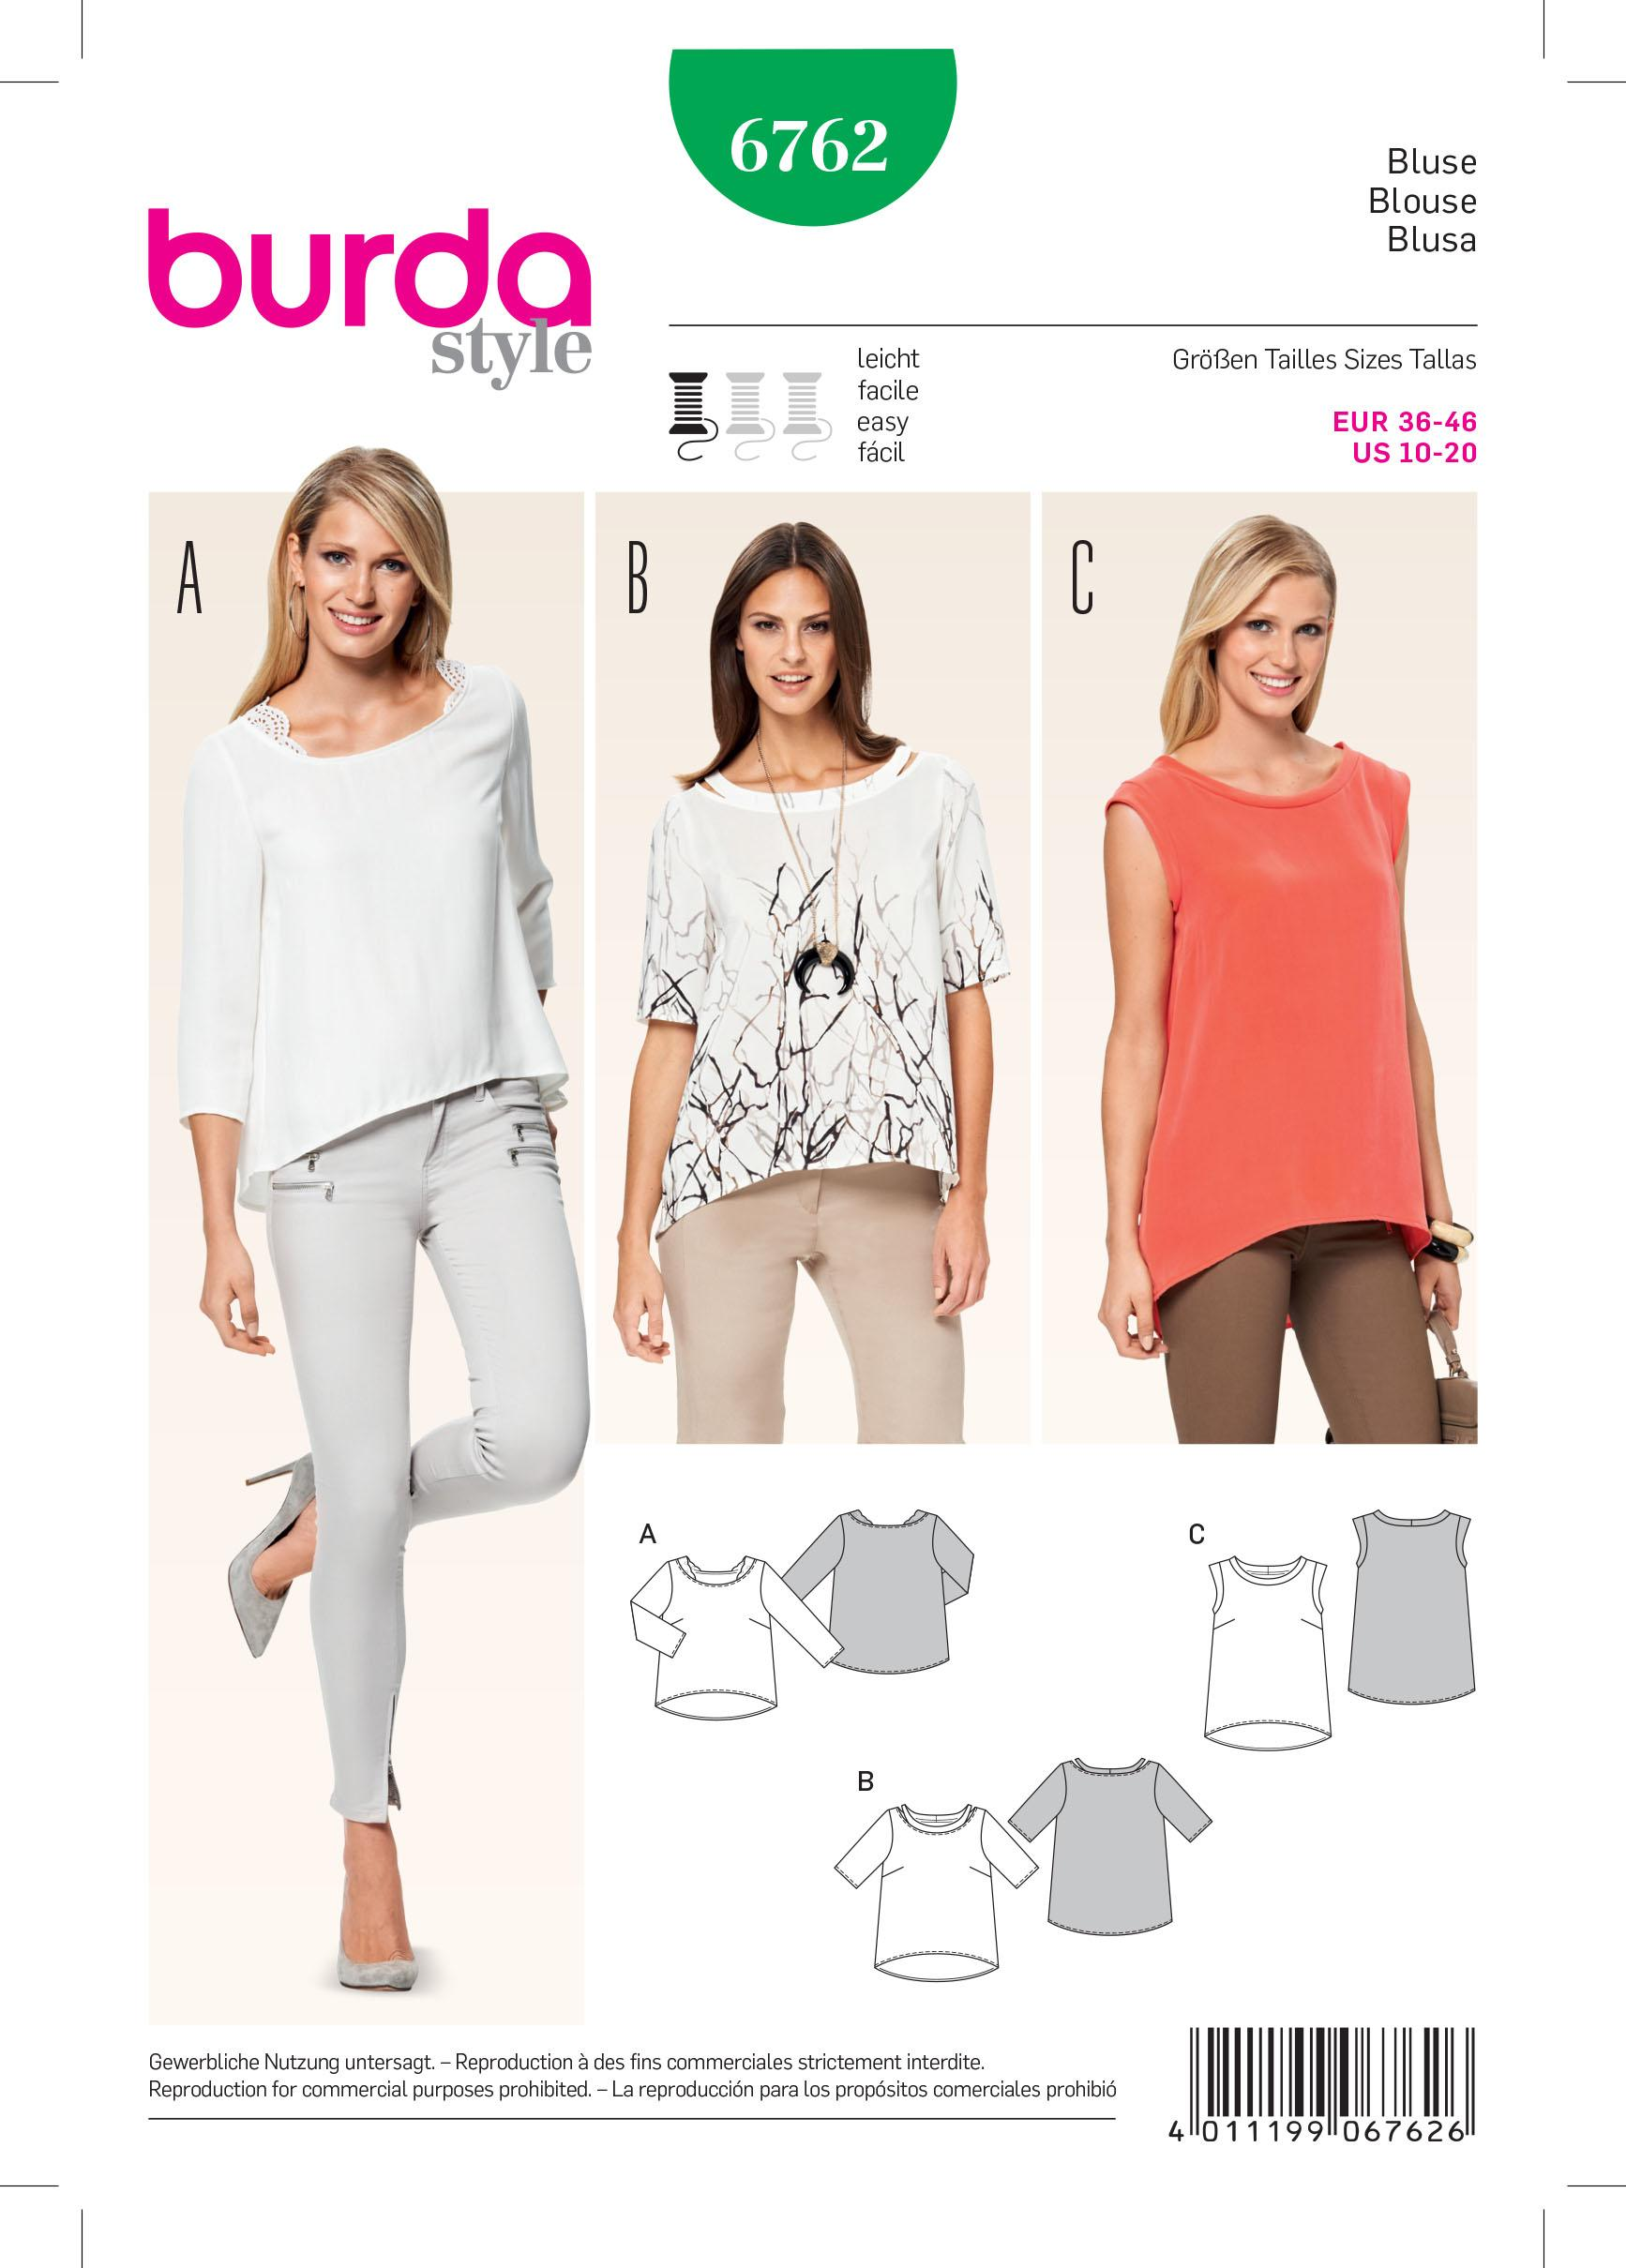 Burda B6762 Tops, Shirts, Blouses Sewing Pattern